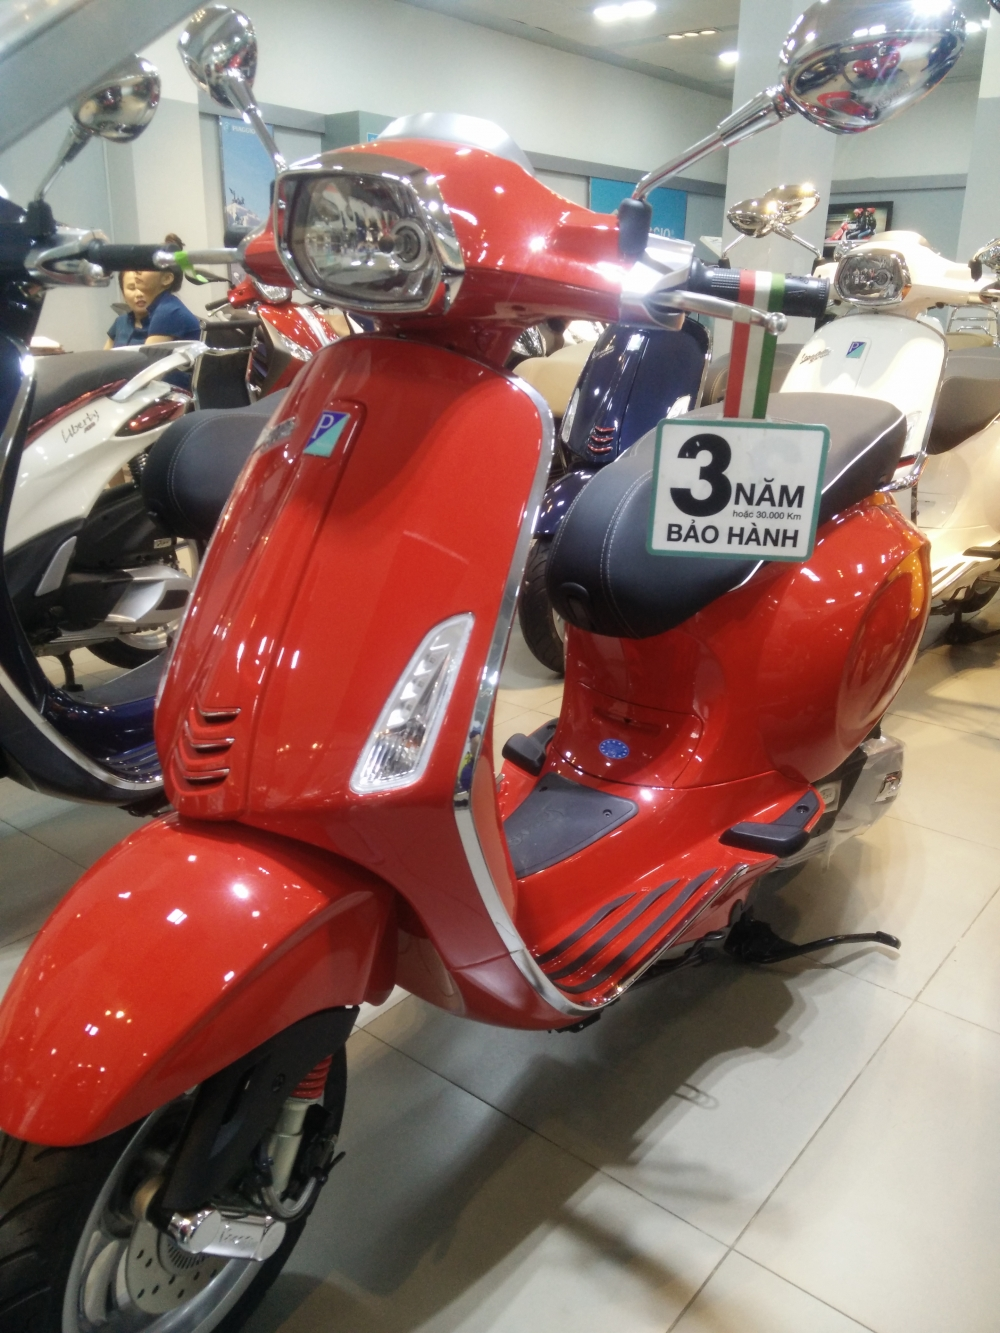 VESPA chinh hang gia tot nhat Update lien tuc - 7